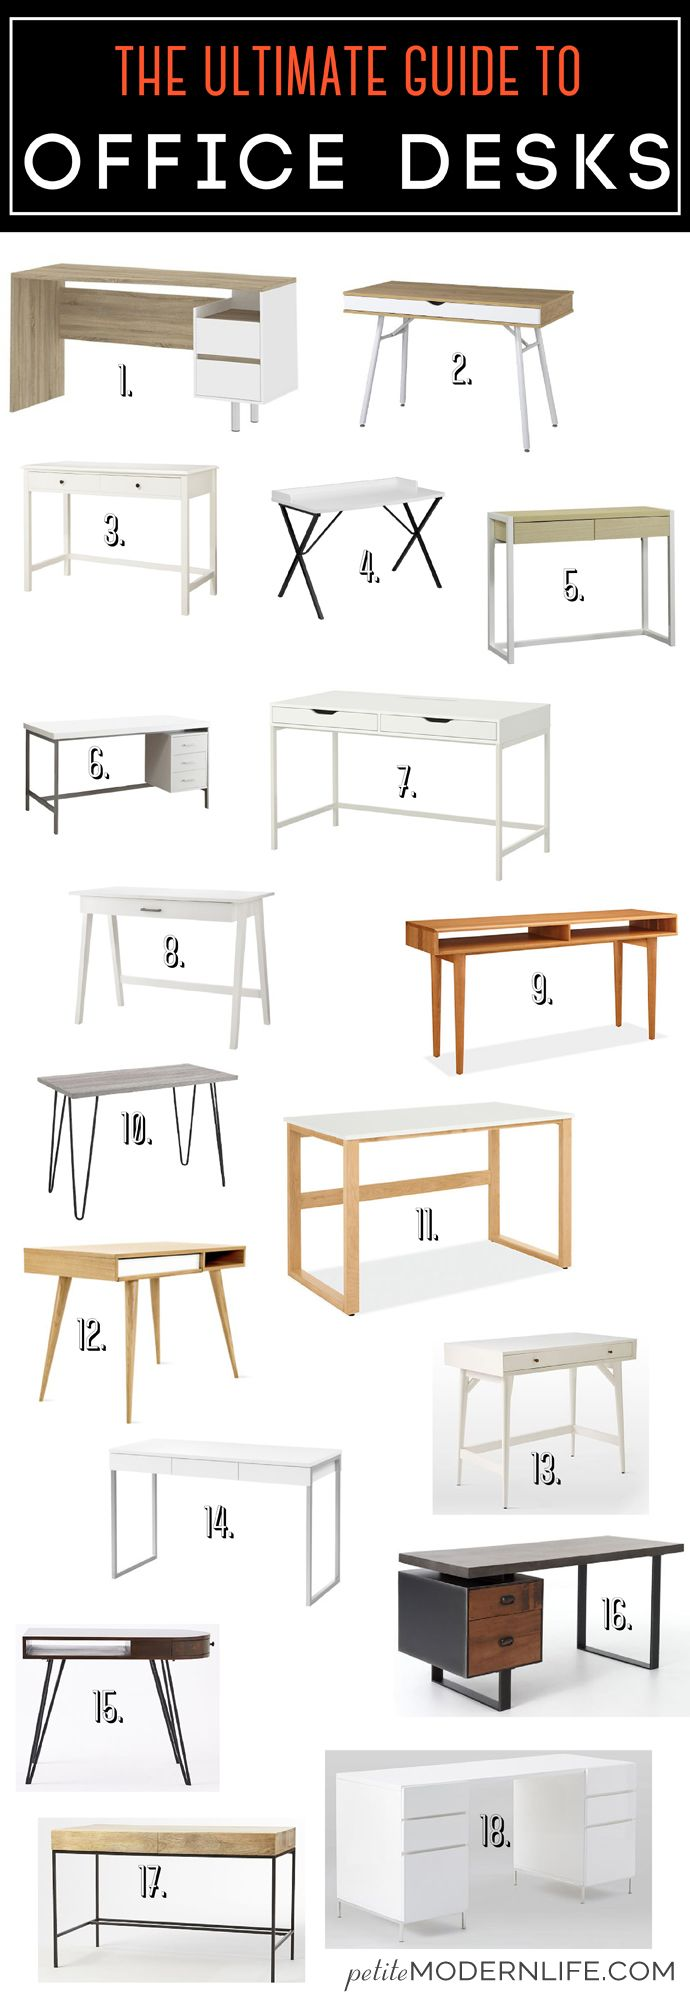 The Ultimate Guide for Modern Office Desks on Petite Modern Life: 18 styles / 5 stores / buy it / build it